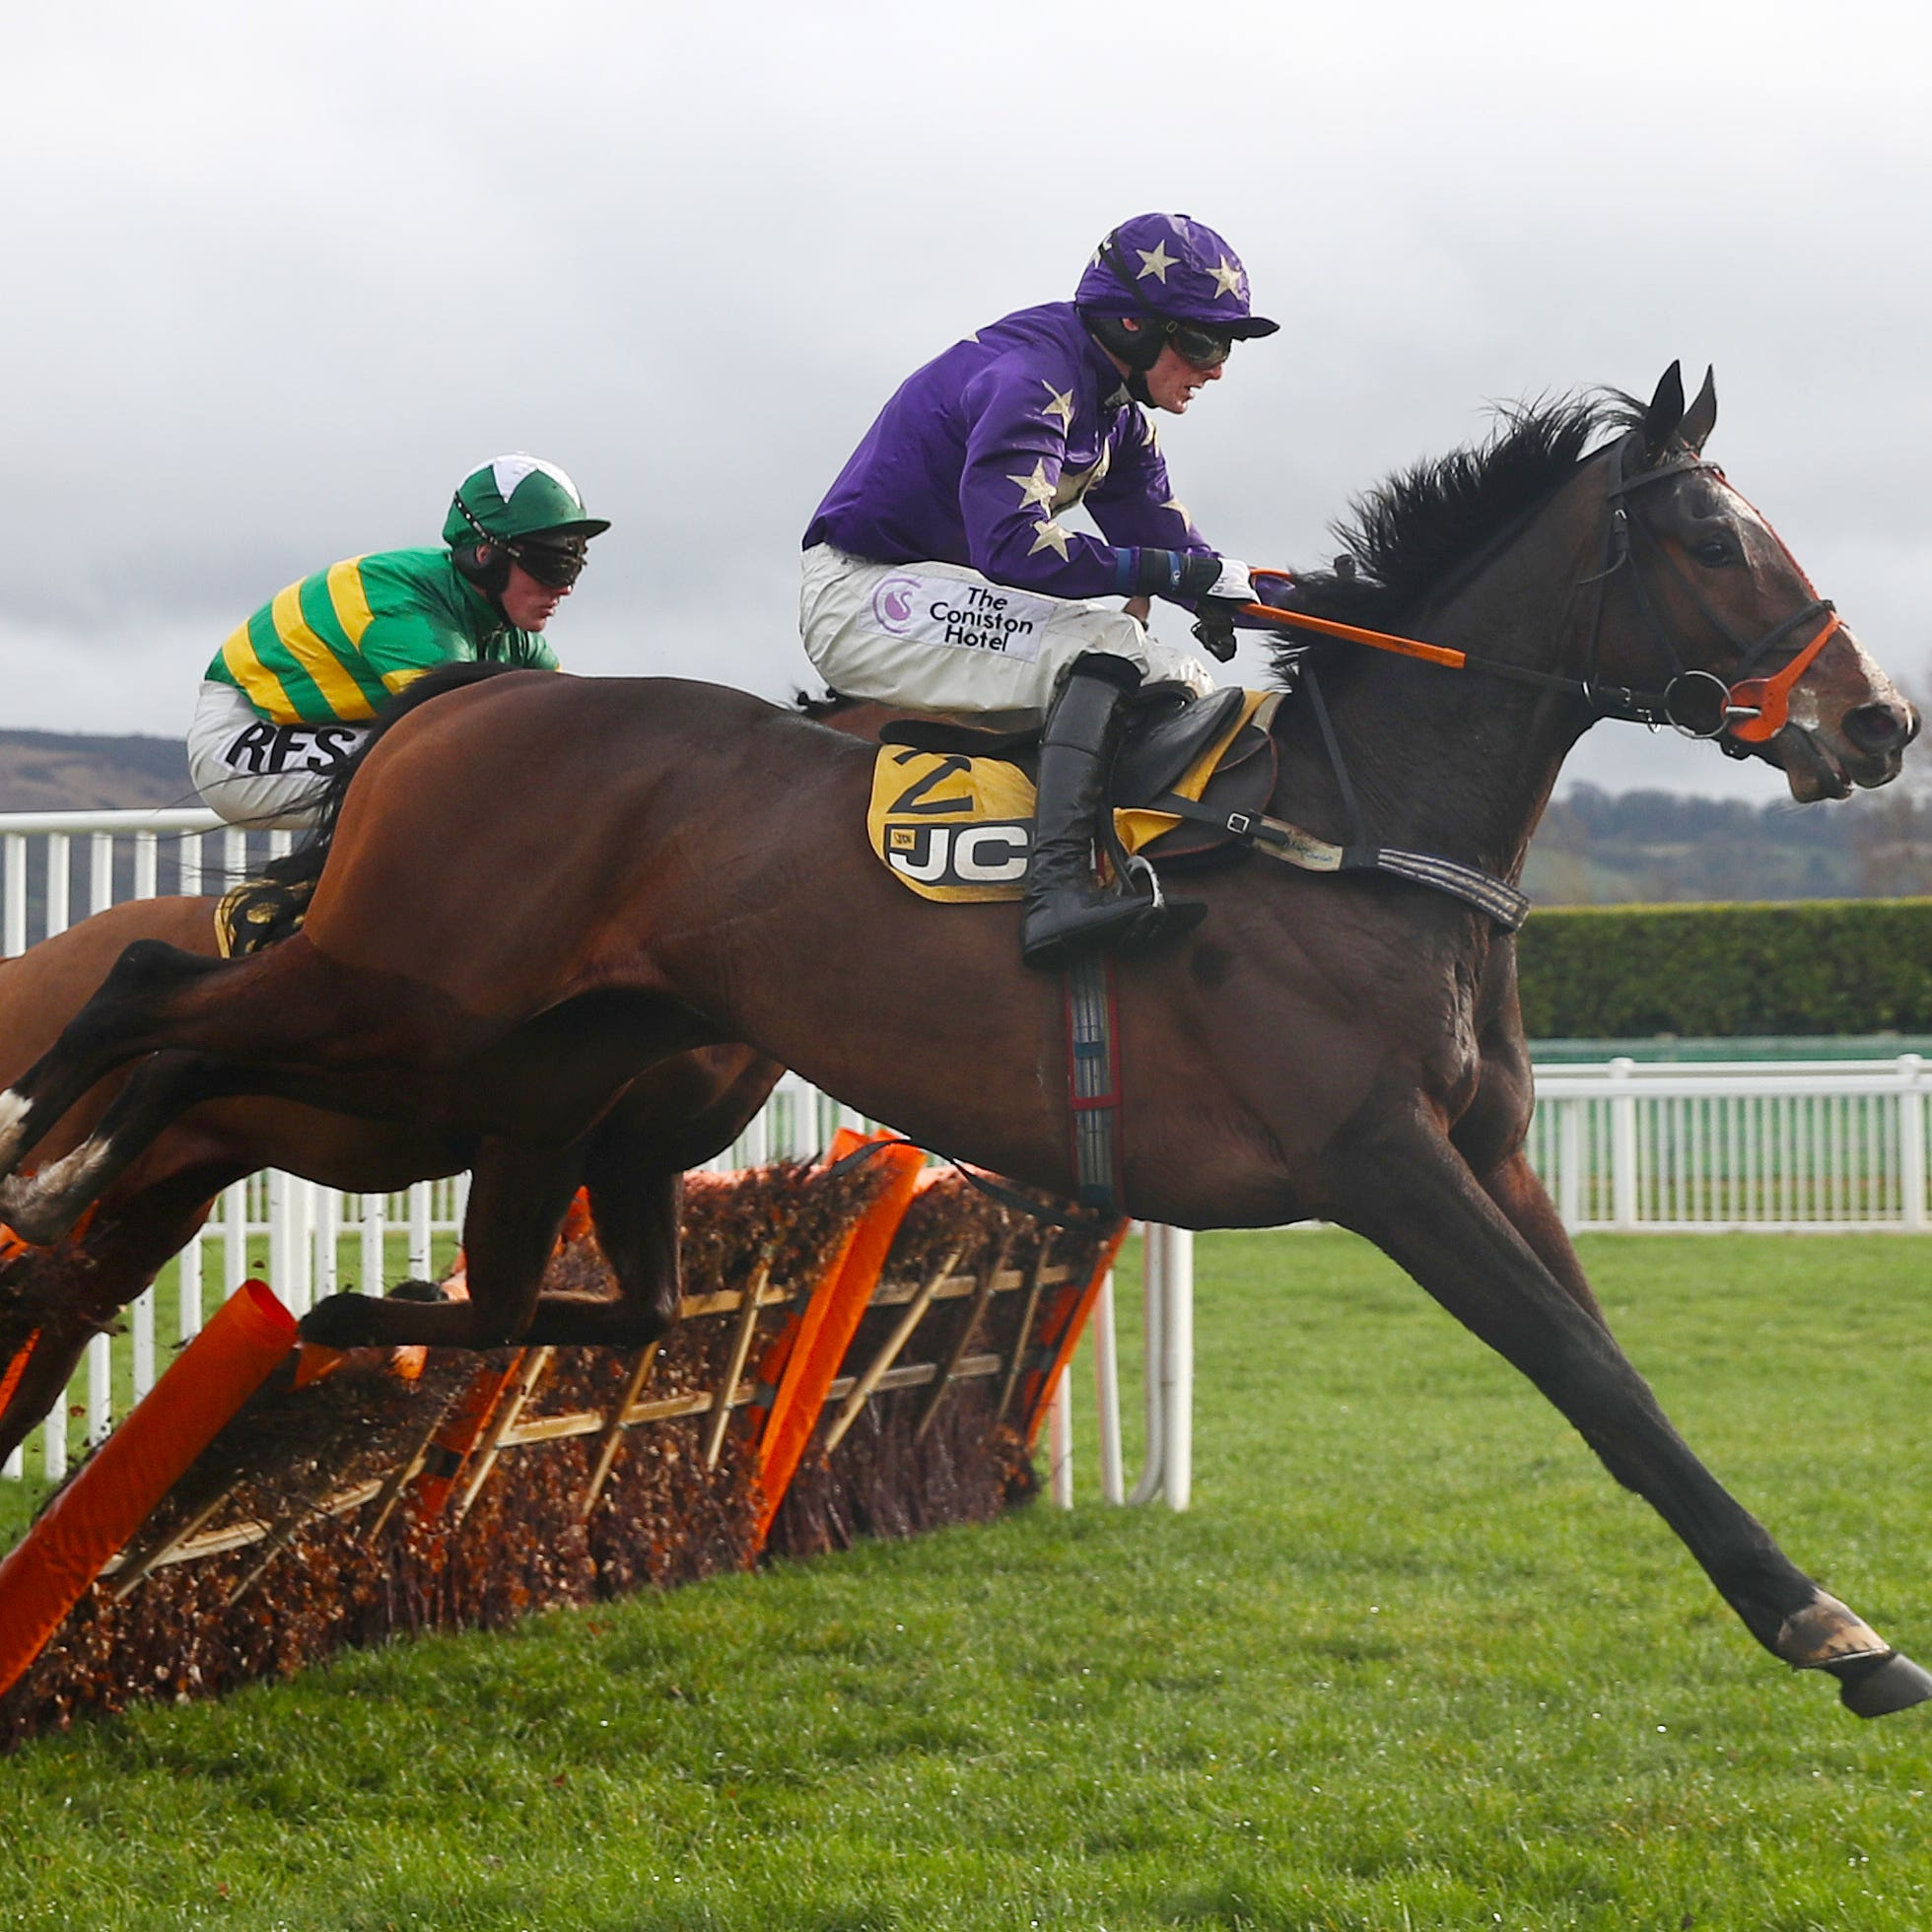 Nelson River will have a deserved break after his fine run in the Triumph Hurdle